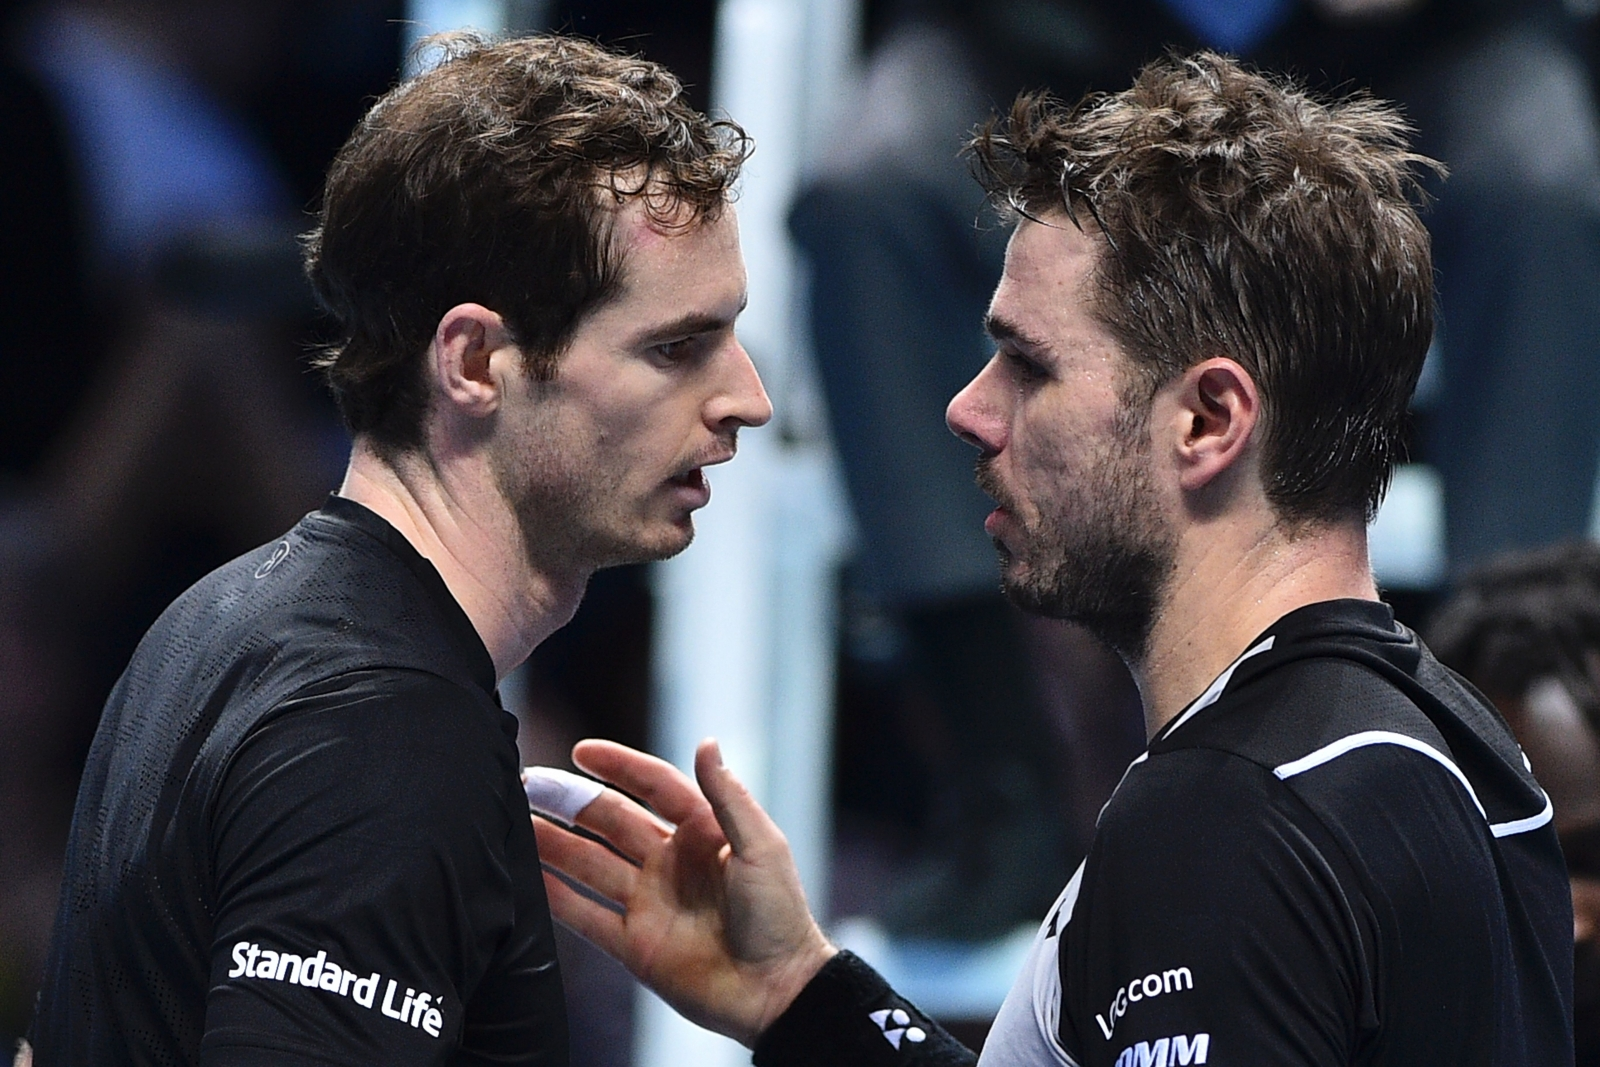 Andy Murray and Stan Wawrinka